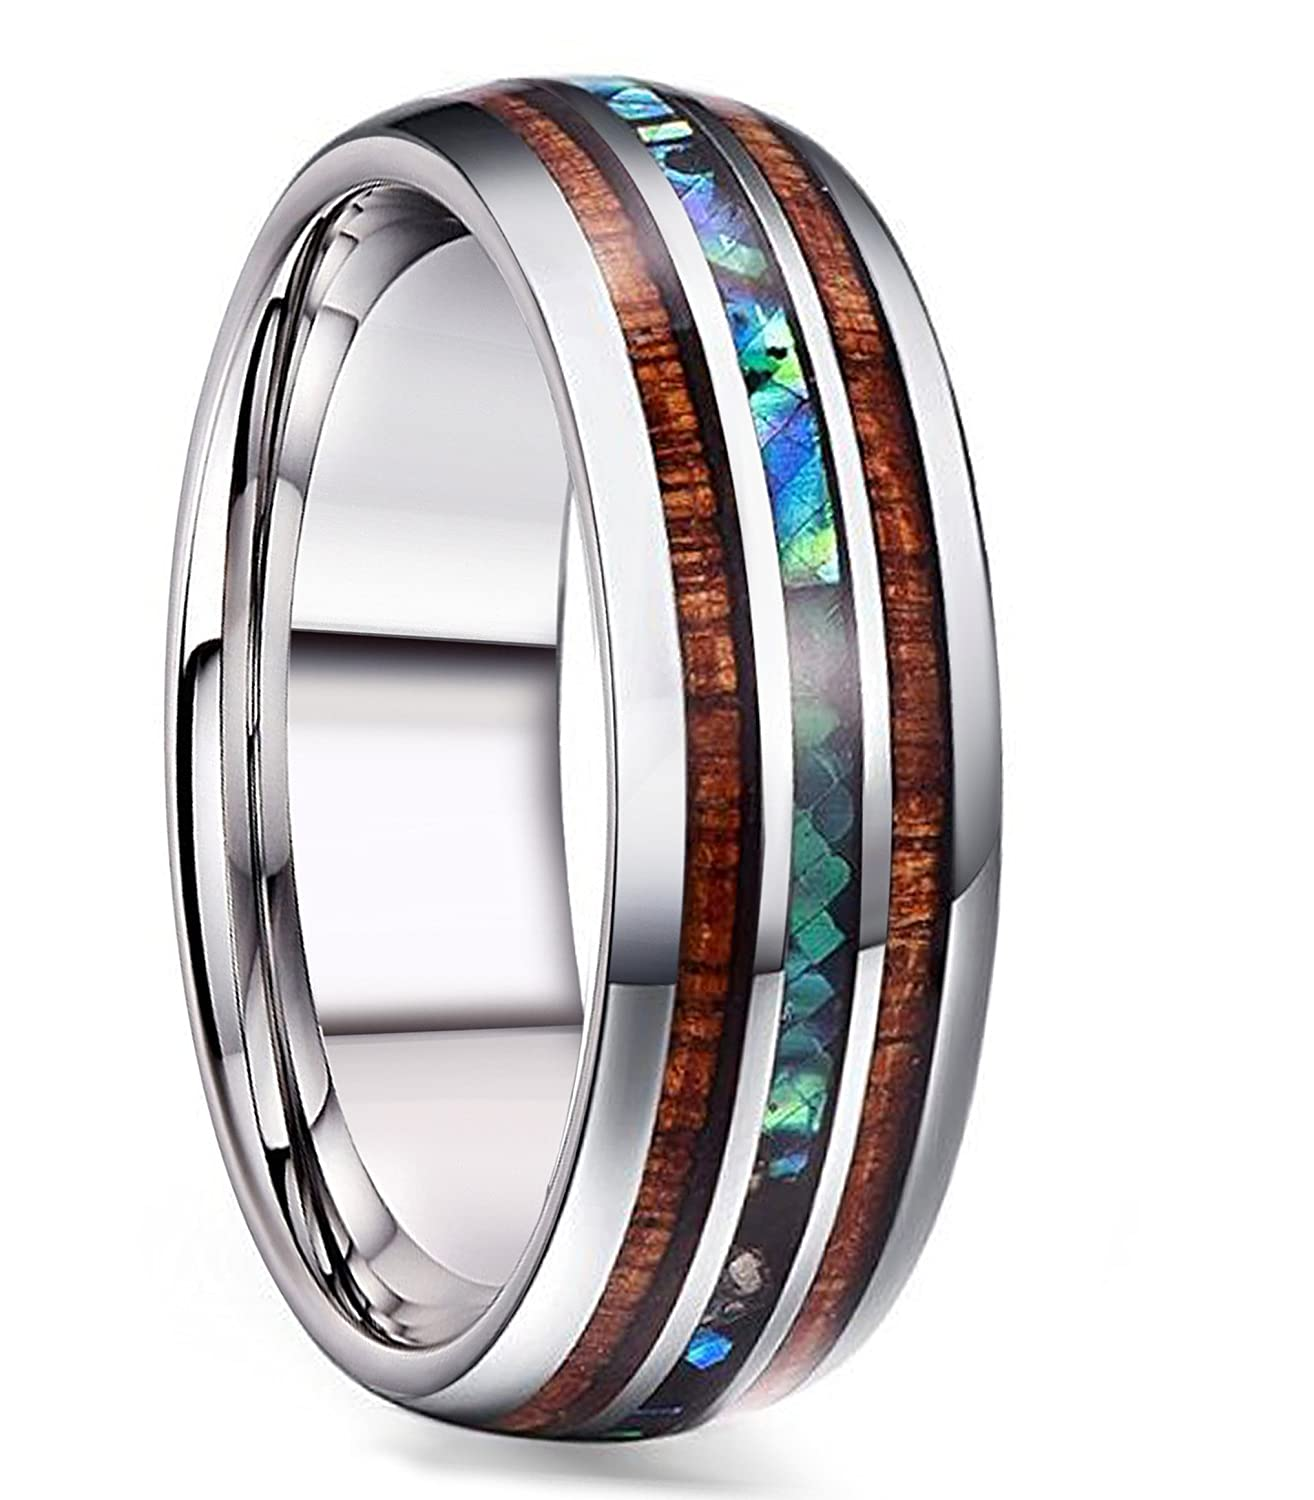 FIBO STEEL 8MM Titanium Wedding Band Ring for Men Women Wood and Abalone Shell Inlaid Size 7-14 2MTR0081